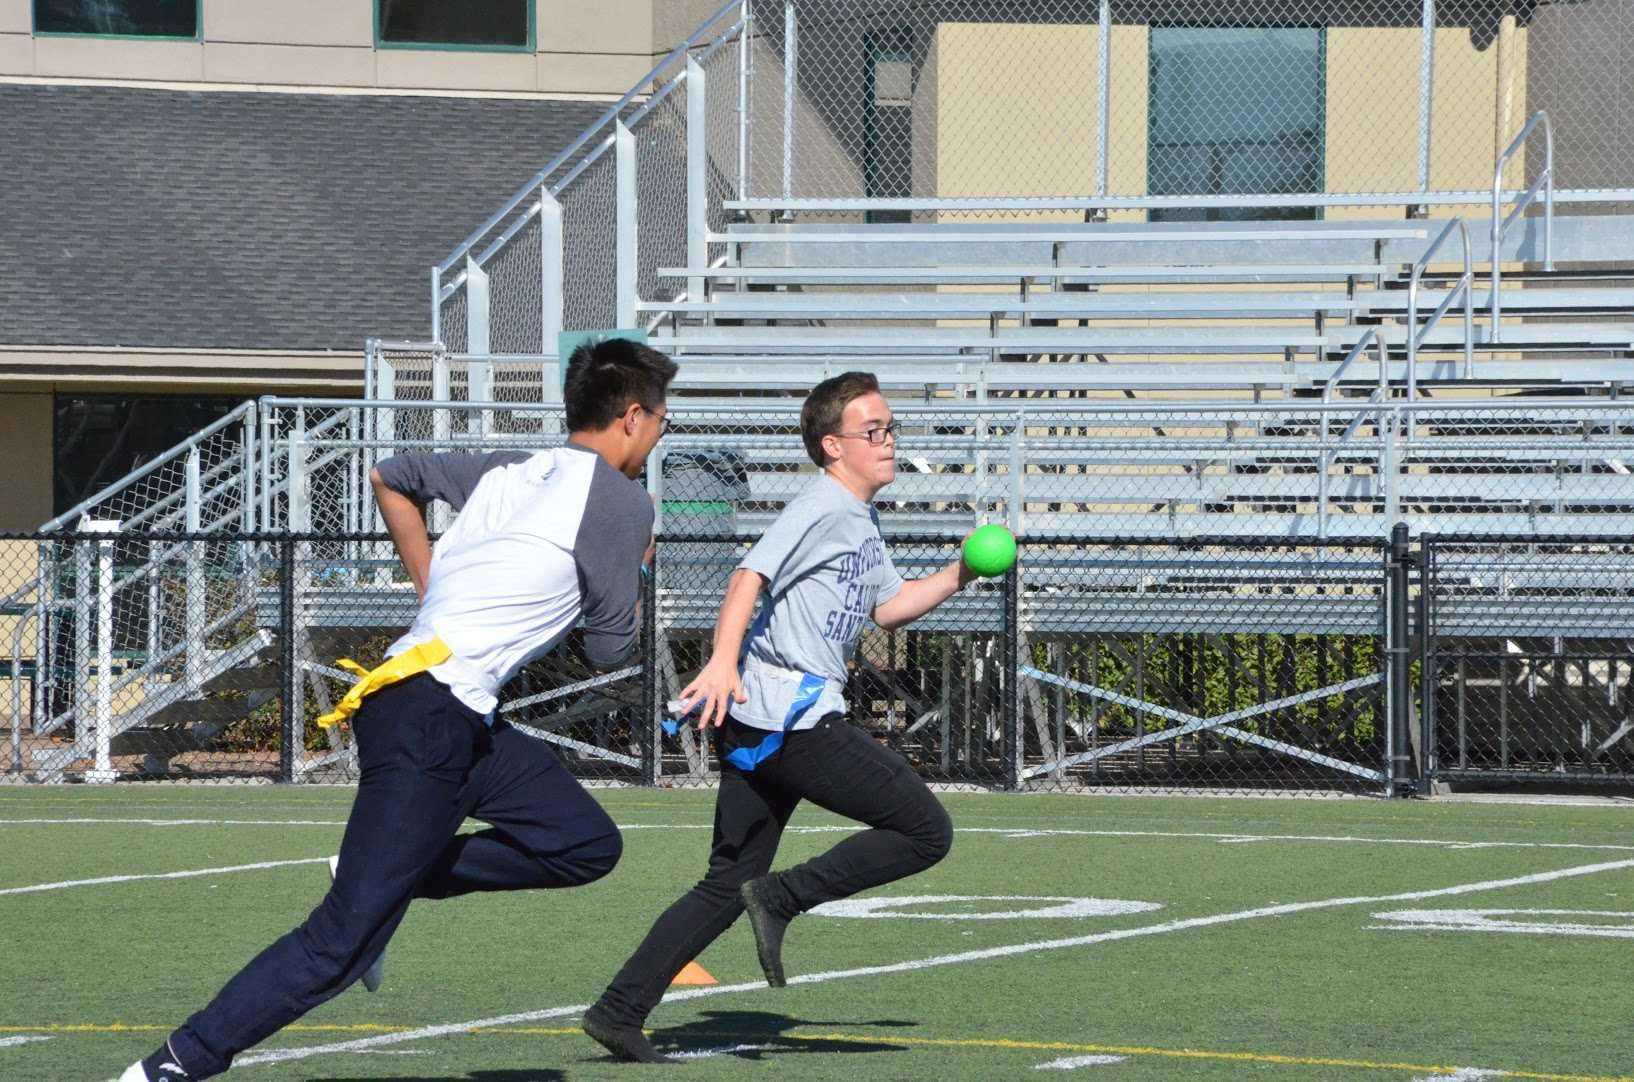 Senior Ryan Fernandez dashes to his side of the field with a ball in his hand while Brandon Mo (10) chases after him to take off one of his flags. Each class competed against each other during long lunch in a game of capture the flag.